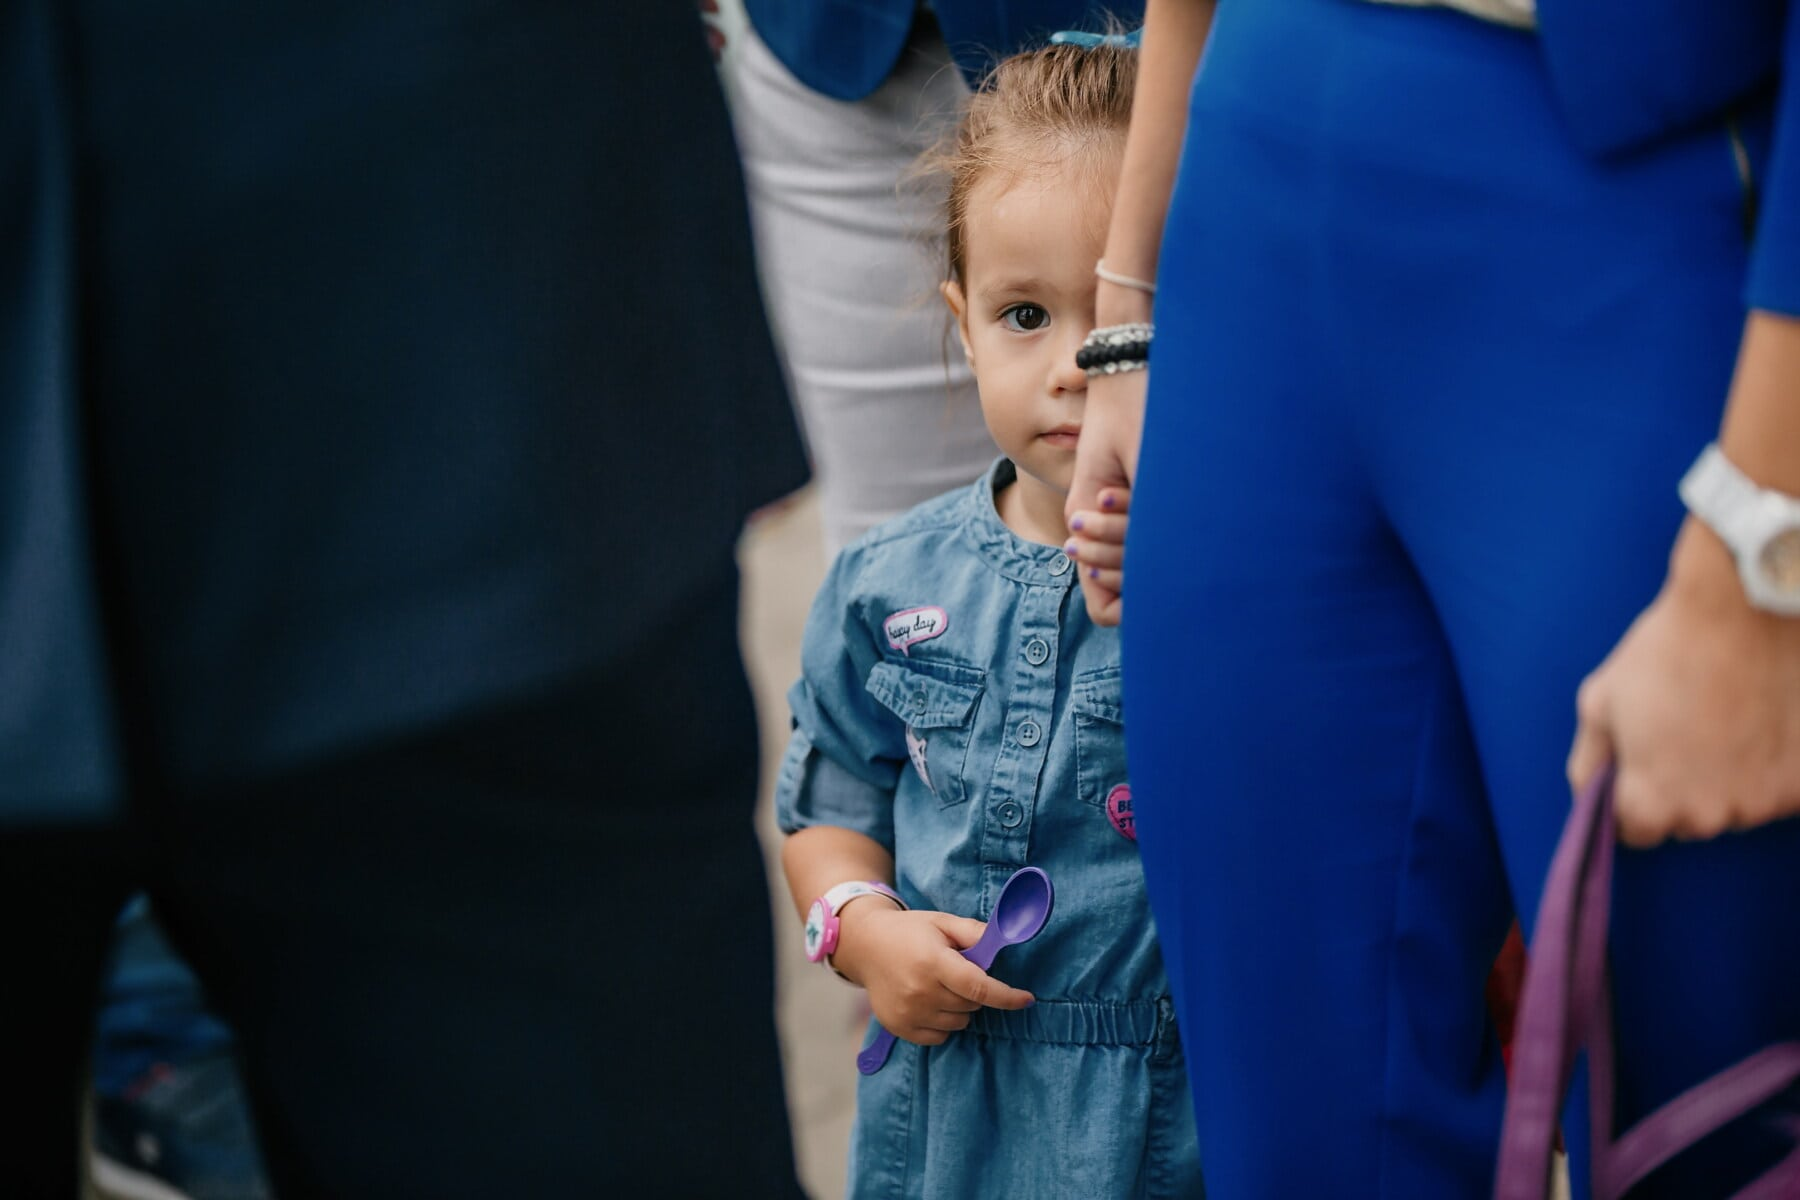 child, crowd, walking, girl, holding hands, mother, daughter, person, people, woman